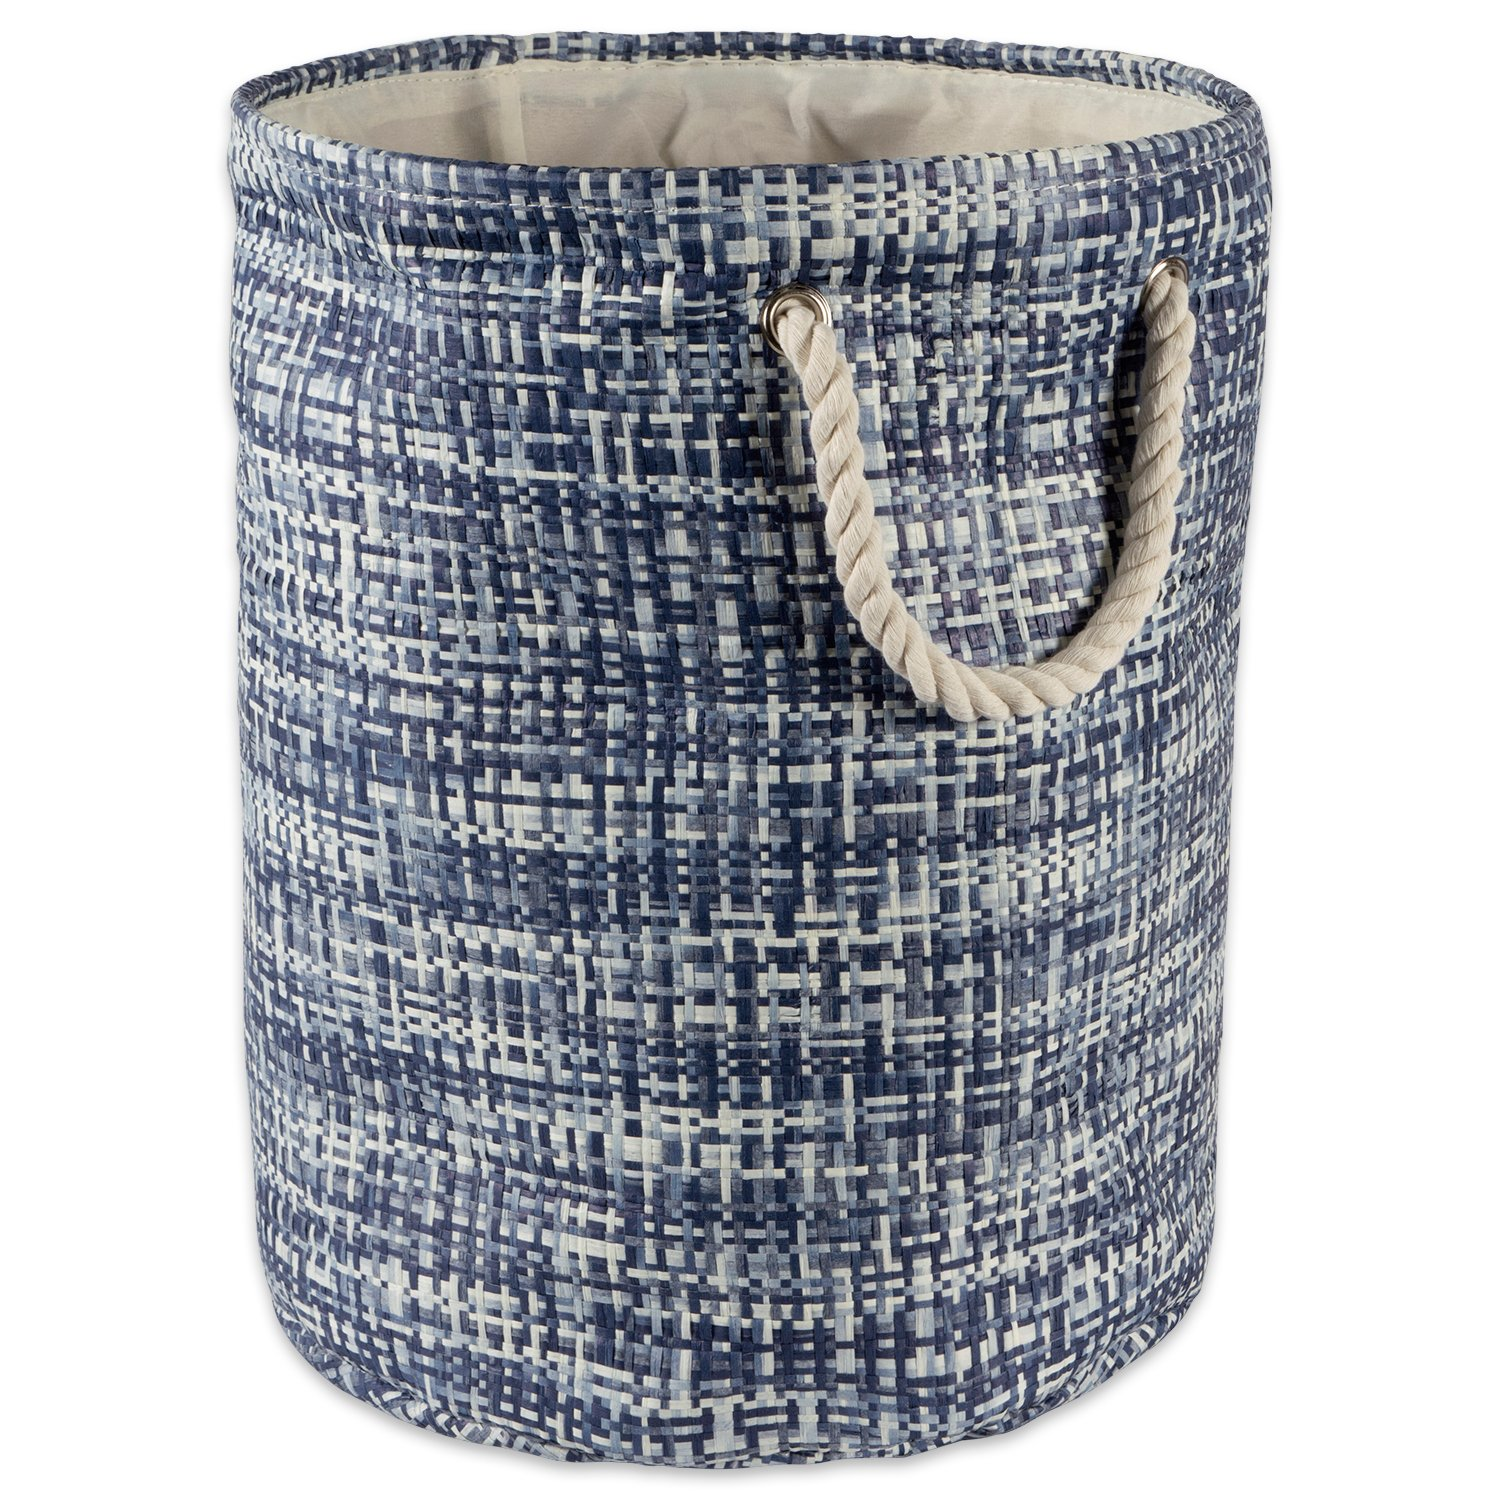 DII Woven Paper Basket or Bin, Collapsible & Convenient Home Organization Solution for Bedroom, Bathroom, Dorm or Laundry (Large Round - 15x20'') - Nautical Blue Tweed